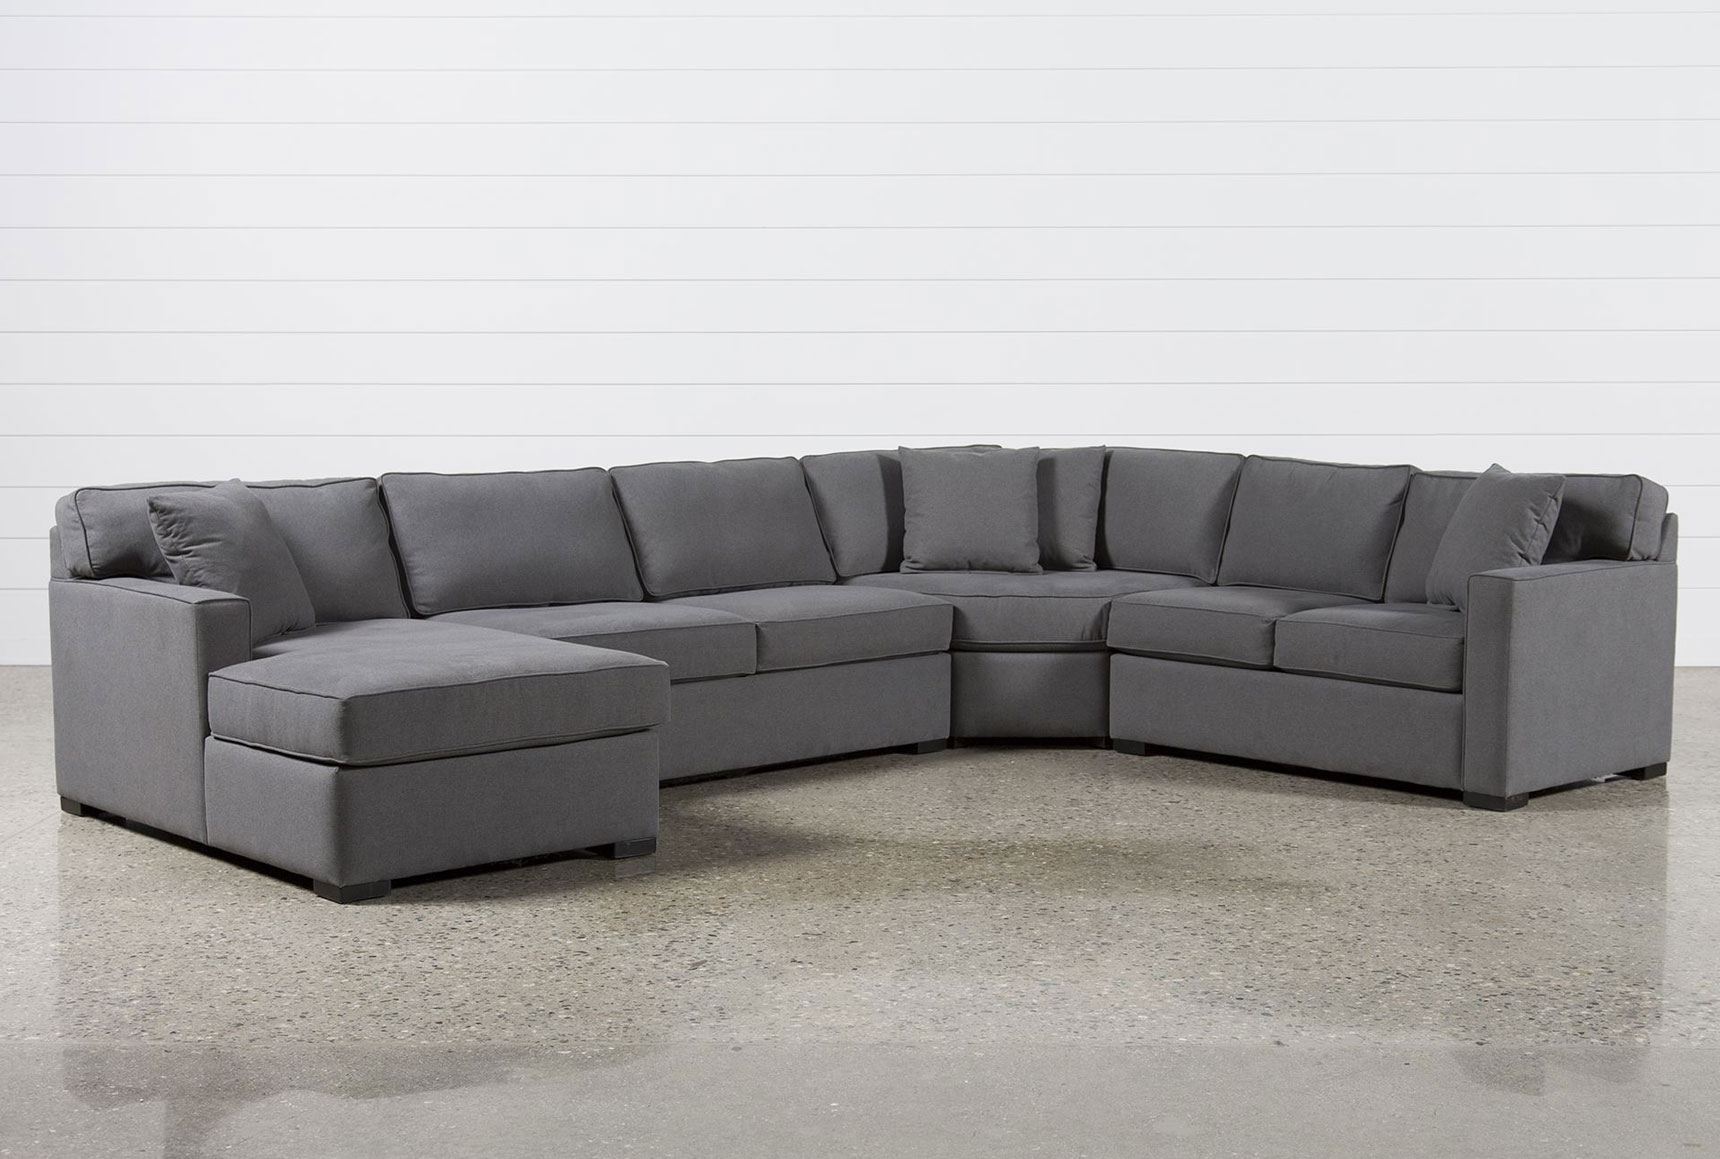 Everett Wa Sectional Sofas In Famous Sectional Sofa: Recommended 45 Degree Sectional Sofa 135 Degree (View 15 of 20)